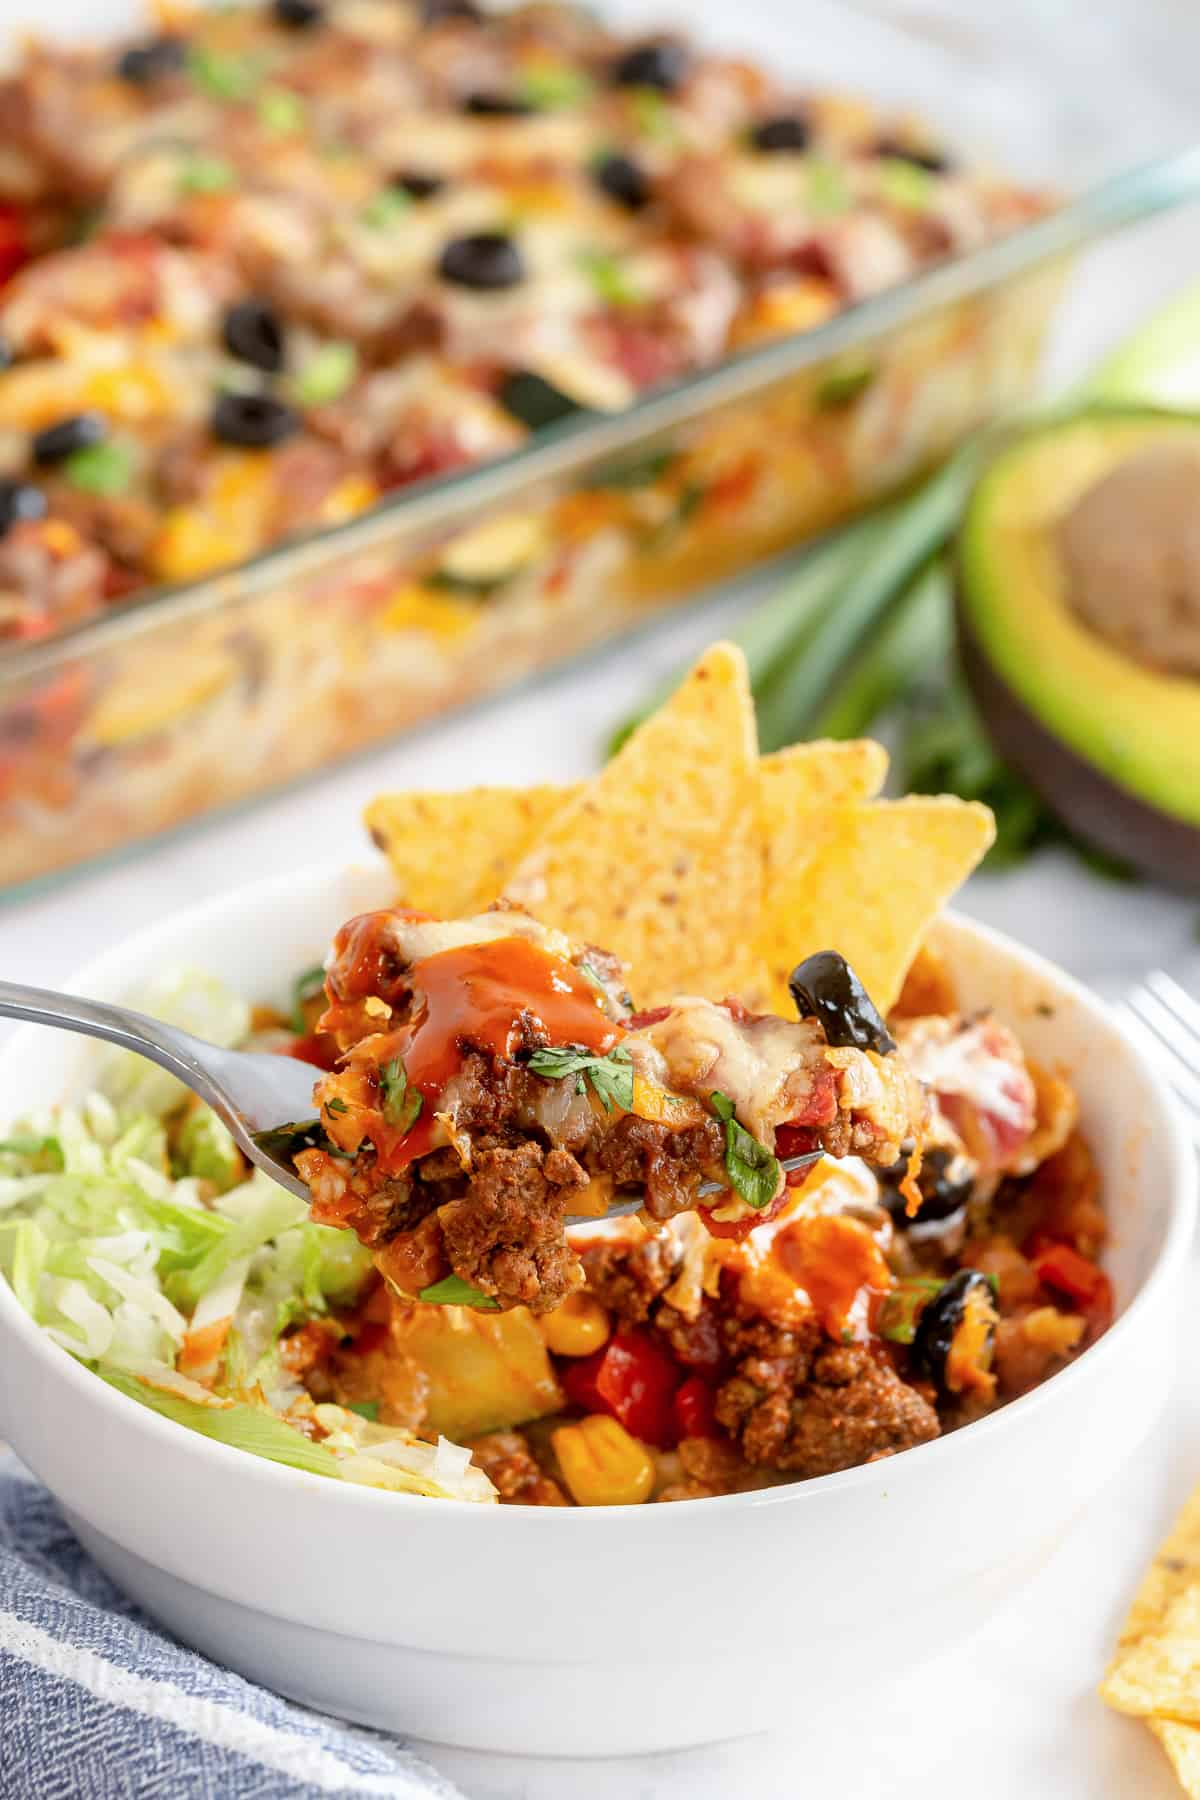 A fork digs into a serving of Beef and Vegetable Taco Bake.